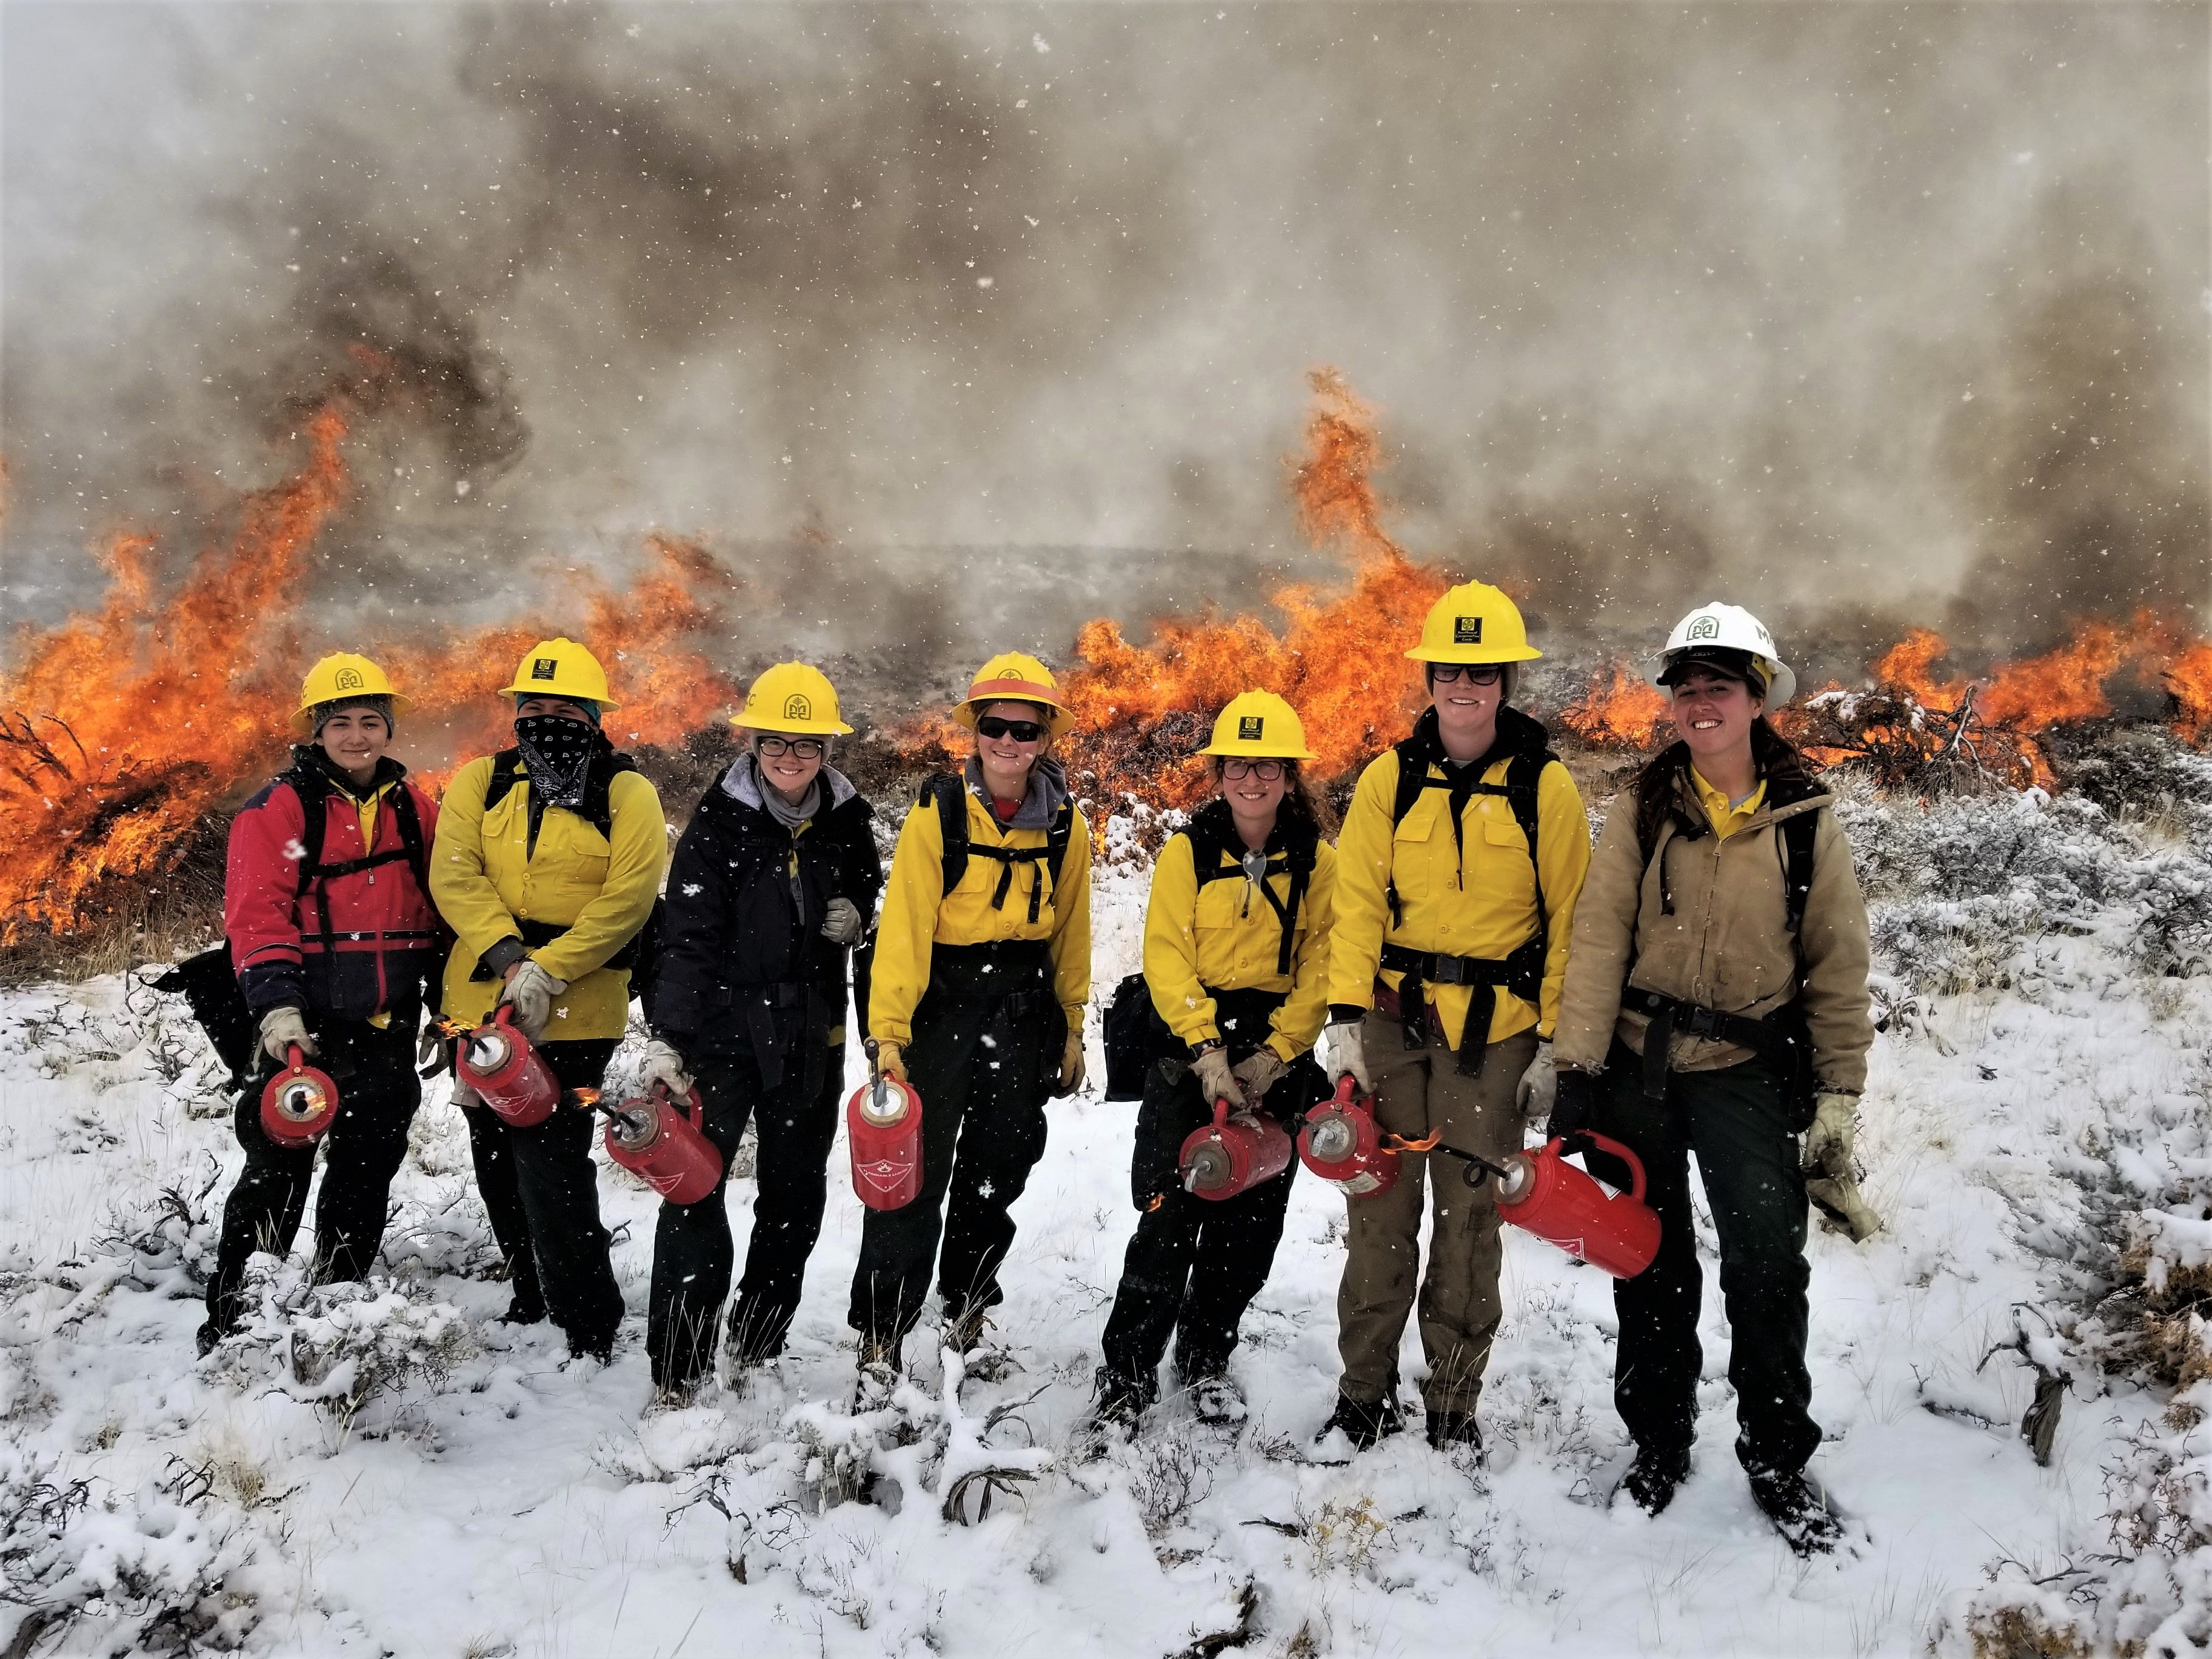 Women standing in protective gear including helmets and chaps. One of the females is wearing the white leader helmet. they are holding fire extinguishing devices and there in snow on the ground but a large fire behind them from burn piles